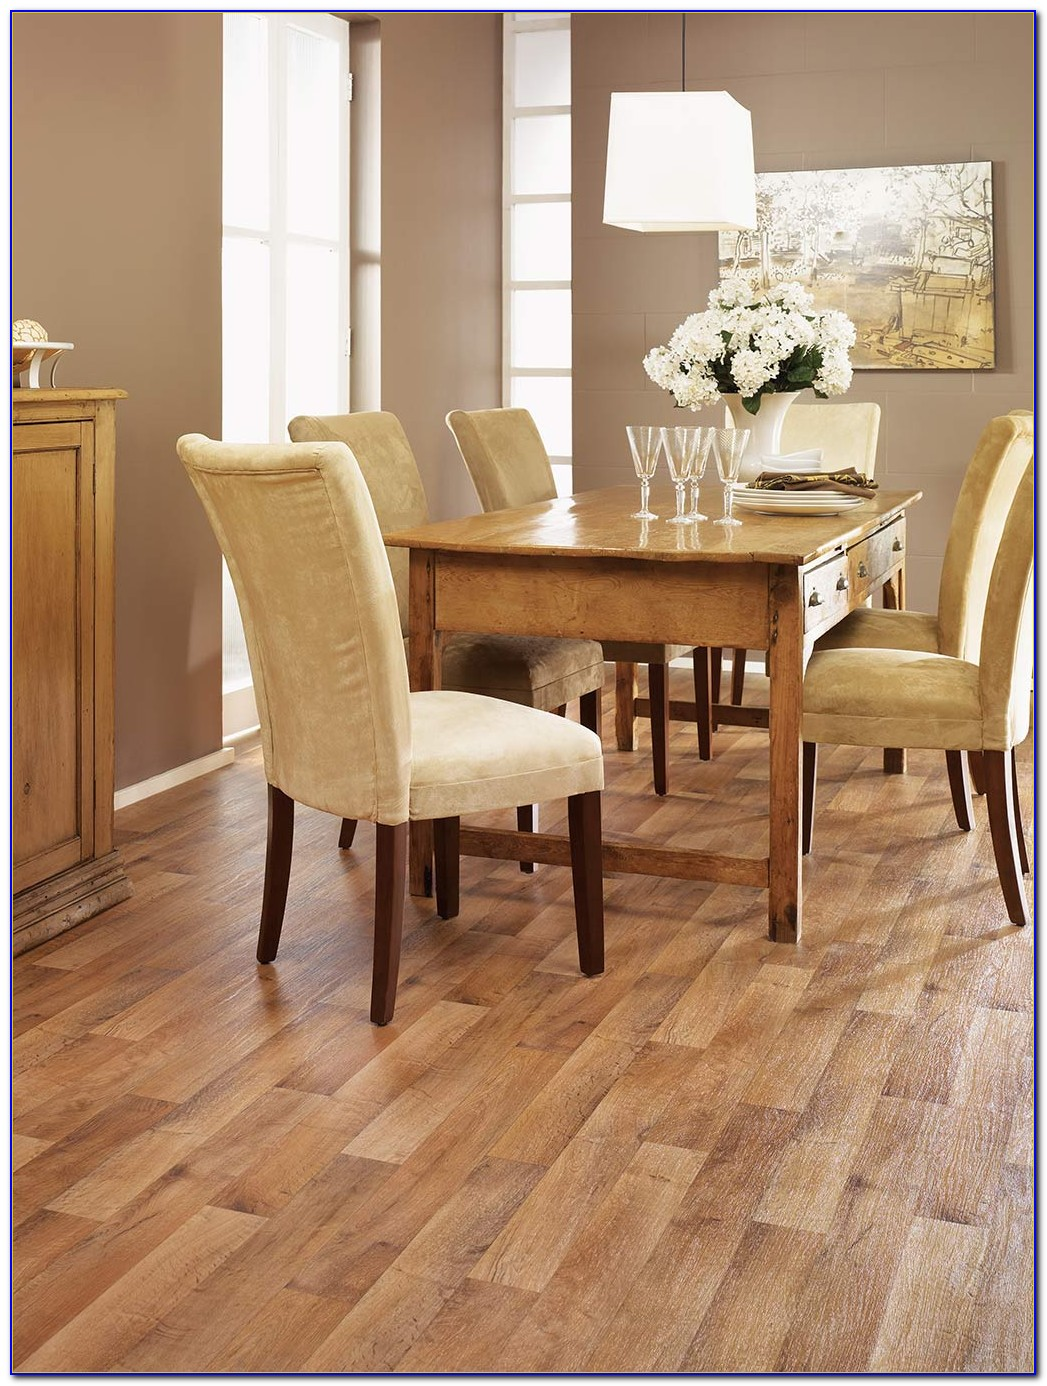 High End Laminate Flooring Vs Hardwood